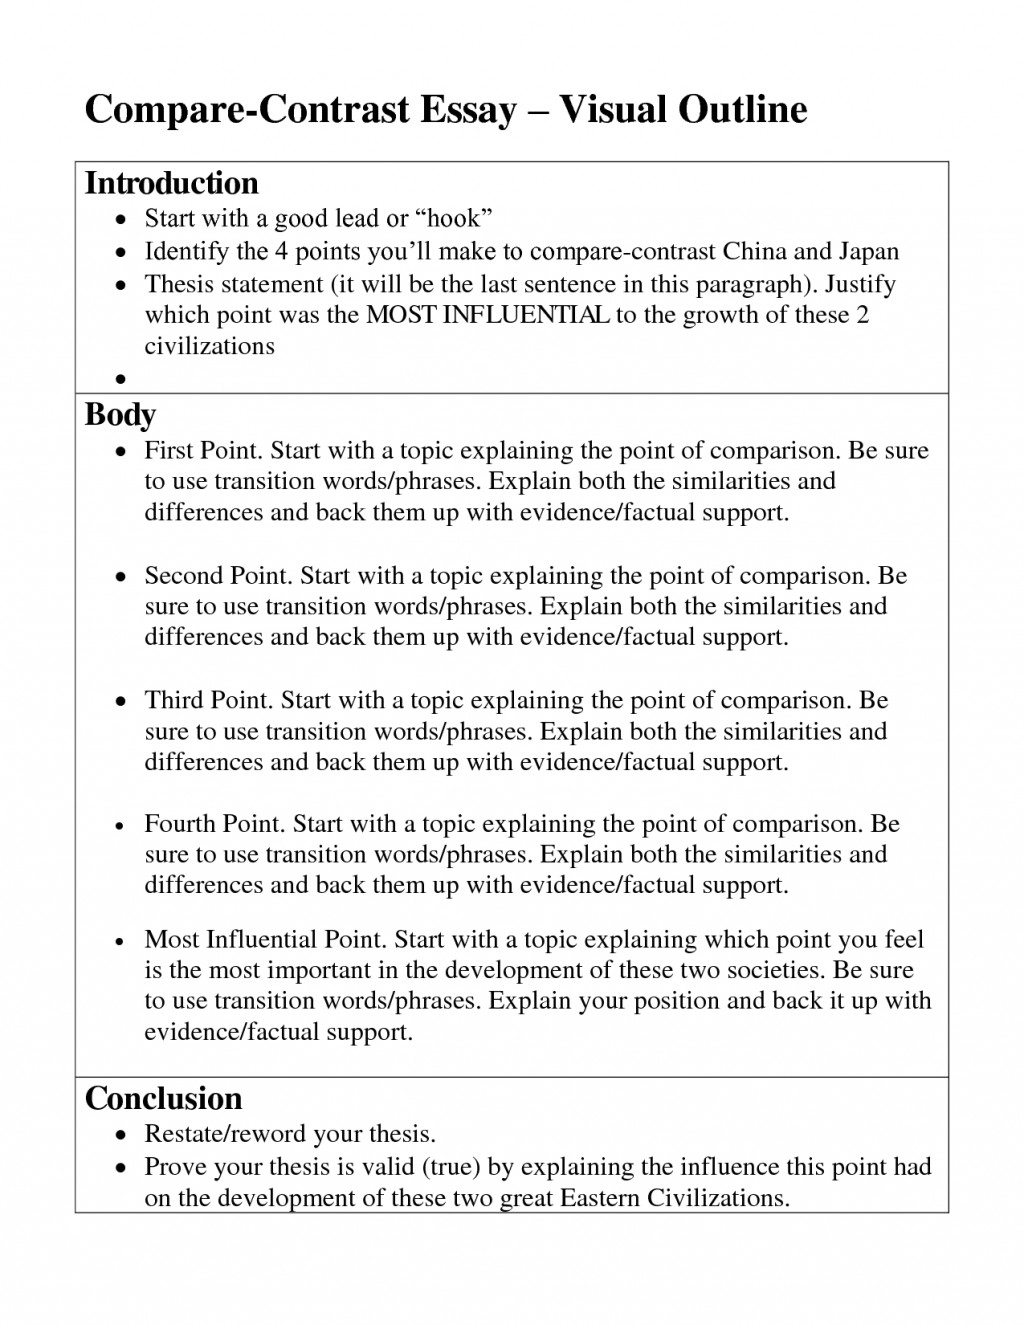 017 Compare And Contrast Essay Frightening Topics Outline Doc Sample 4th Grade Large